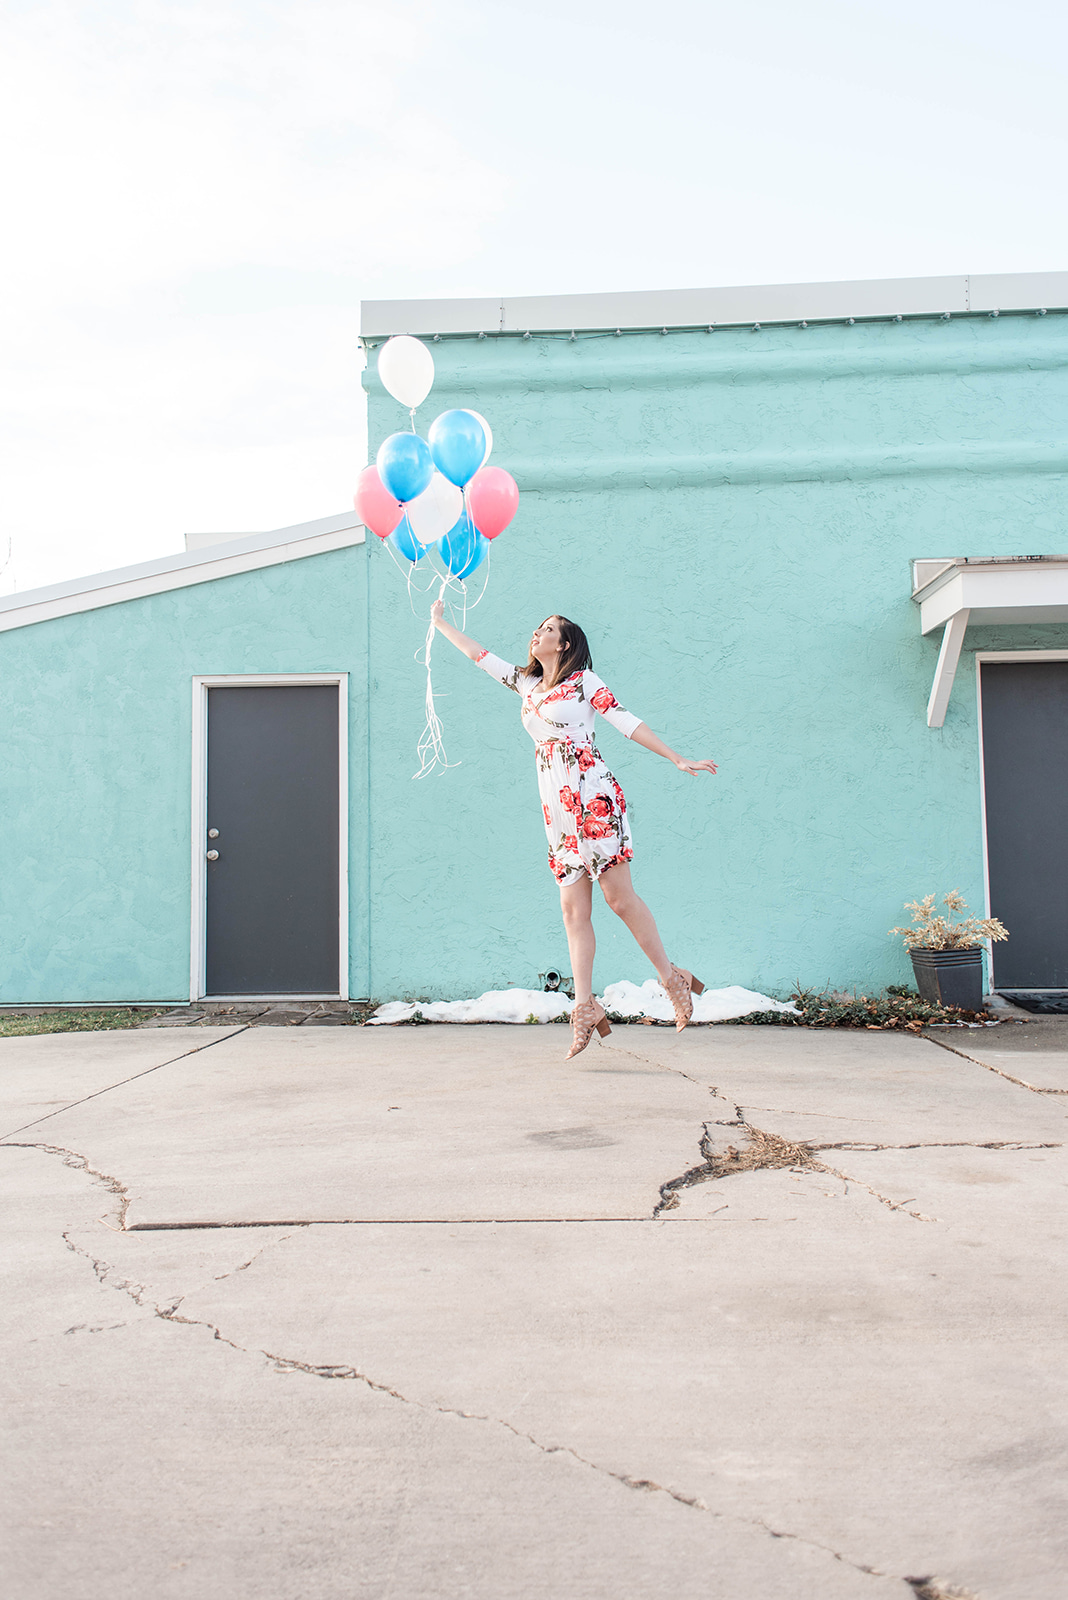 Photo idea with balloons - cute spring dress // Hey There, Chelsie